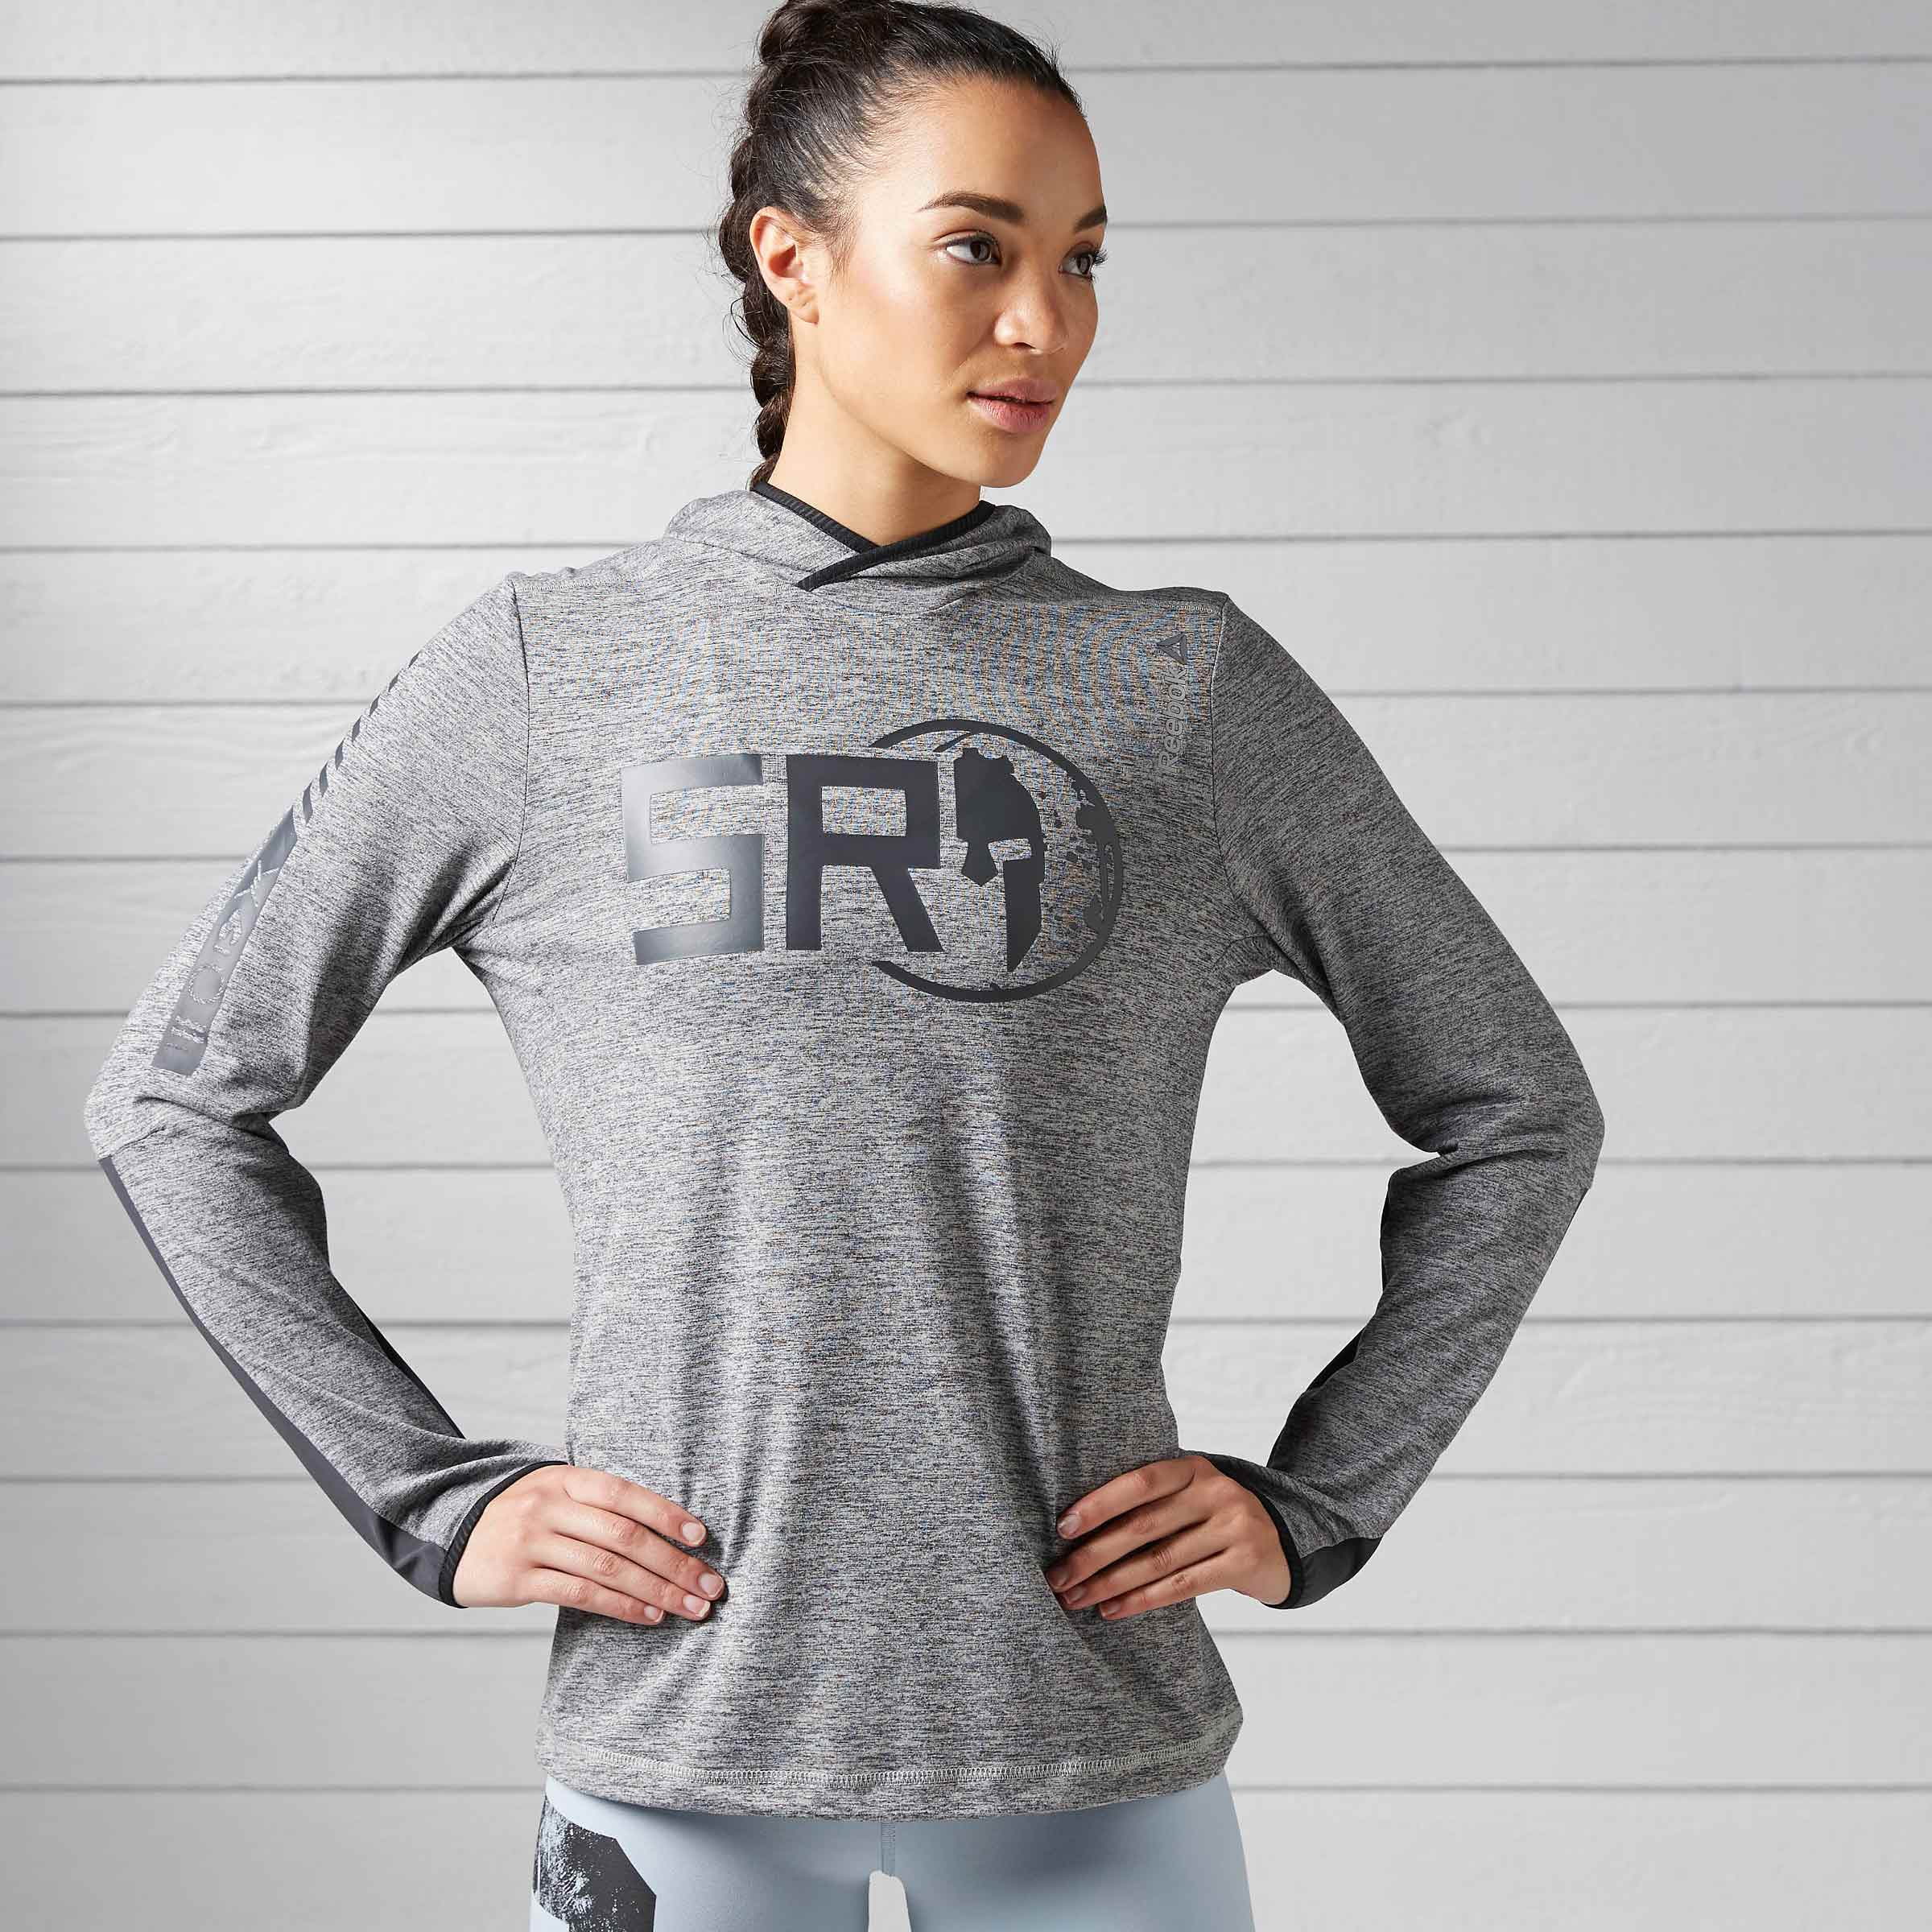 Spartan Race Gift Guide